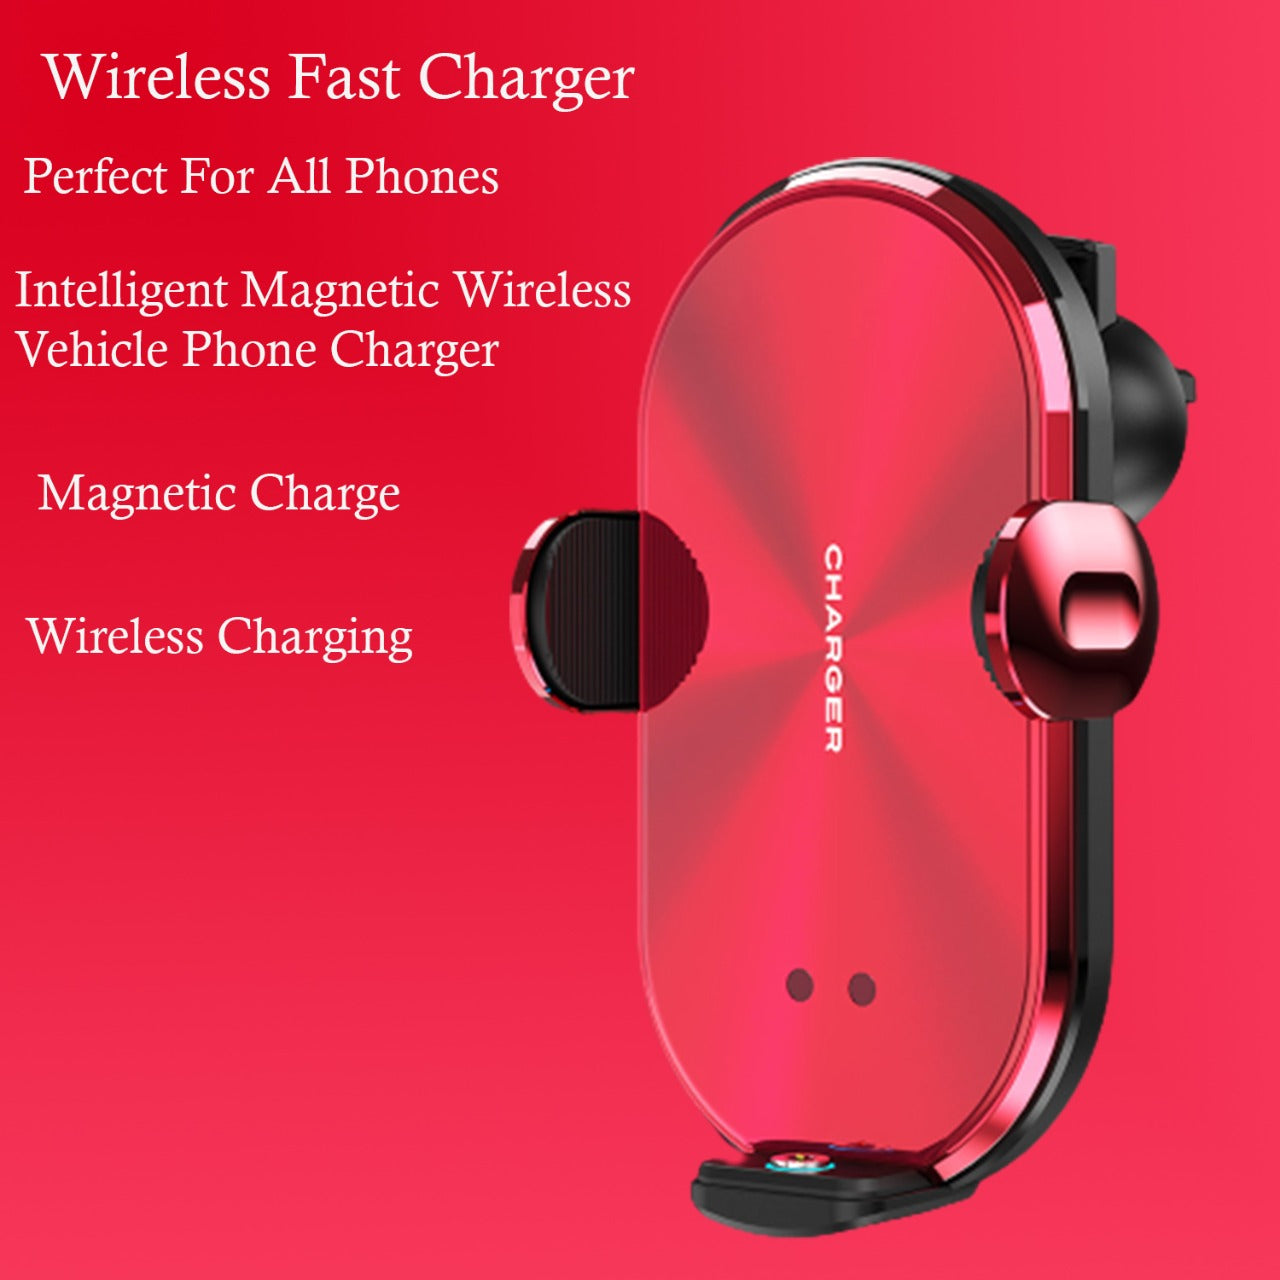 Car Wireless Charger Smart Sensor With 3 Type Pin (Android/ Apple/ C- Type)